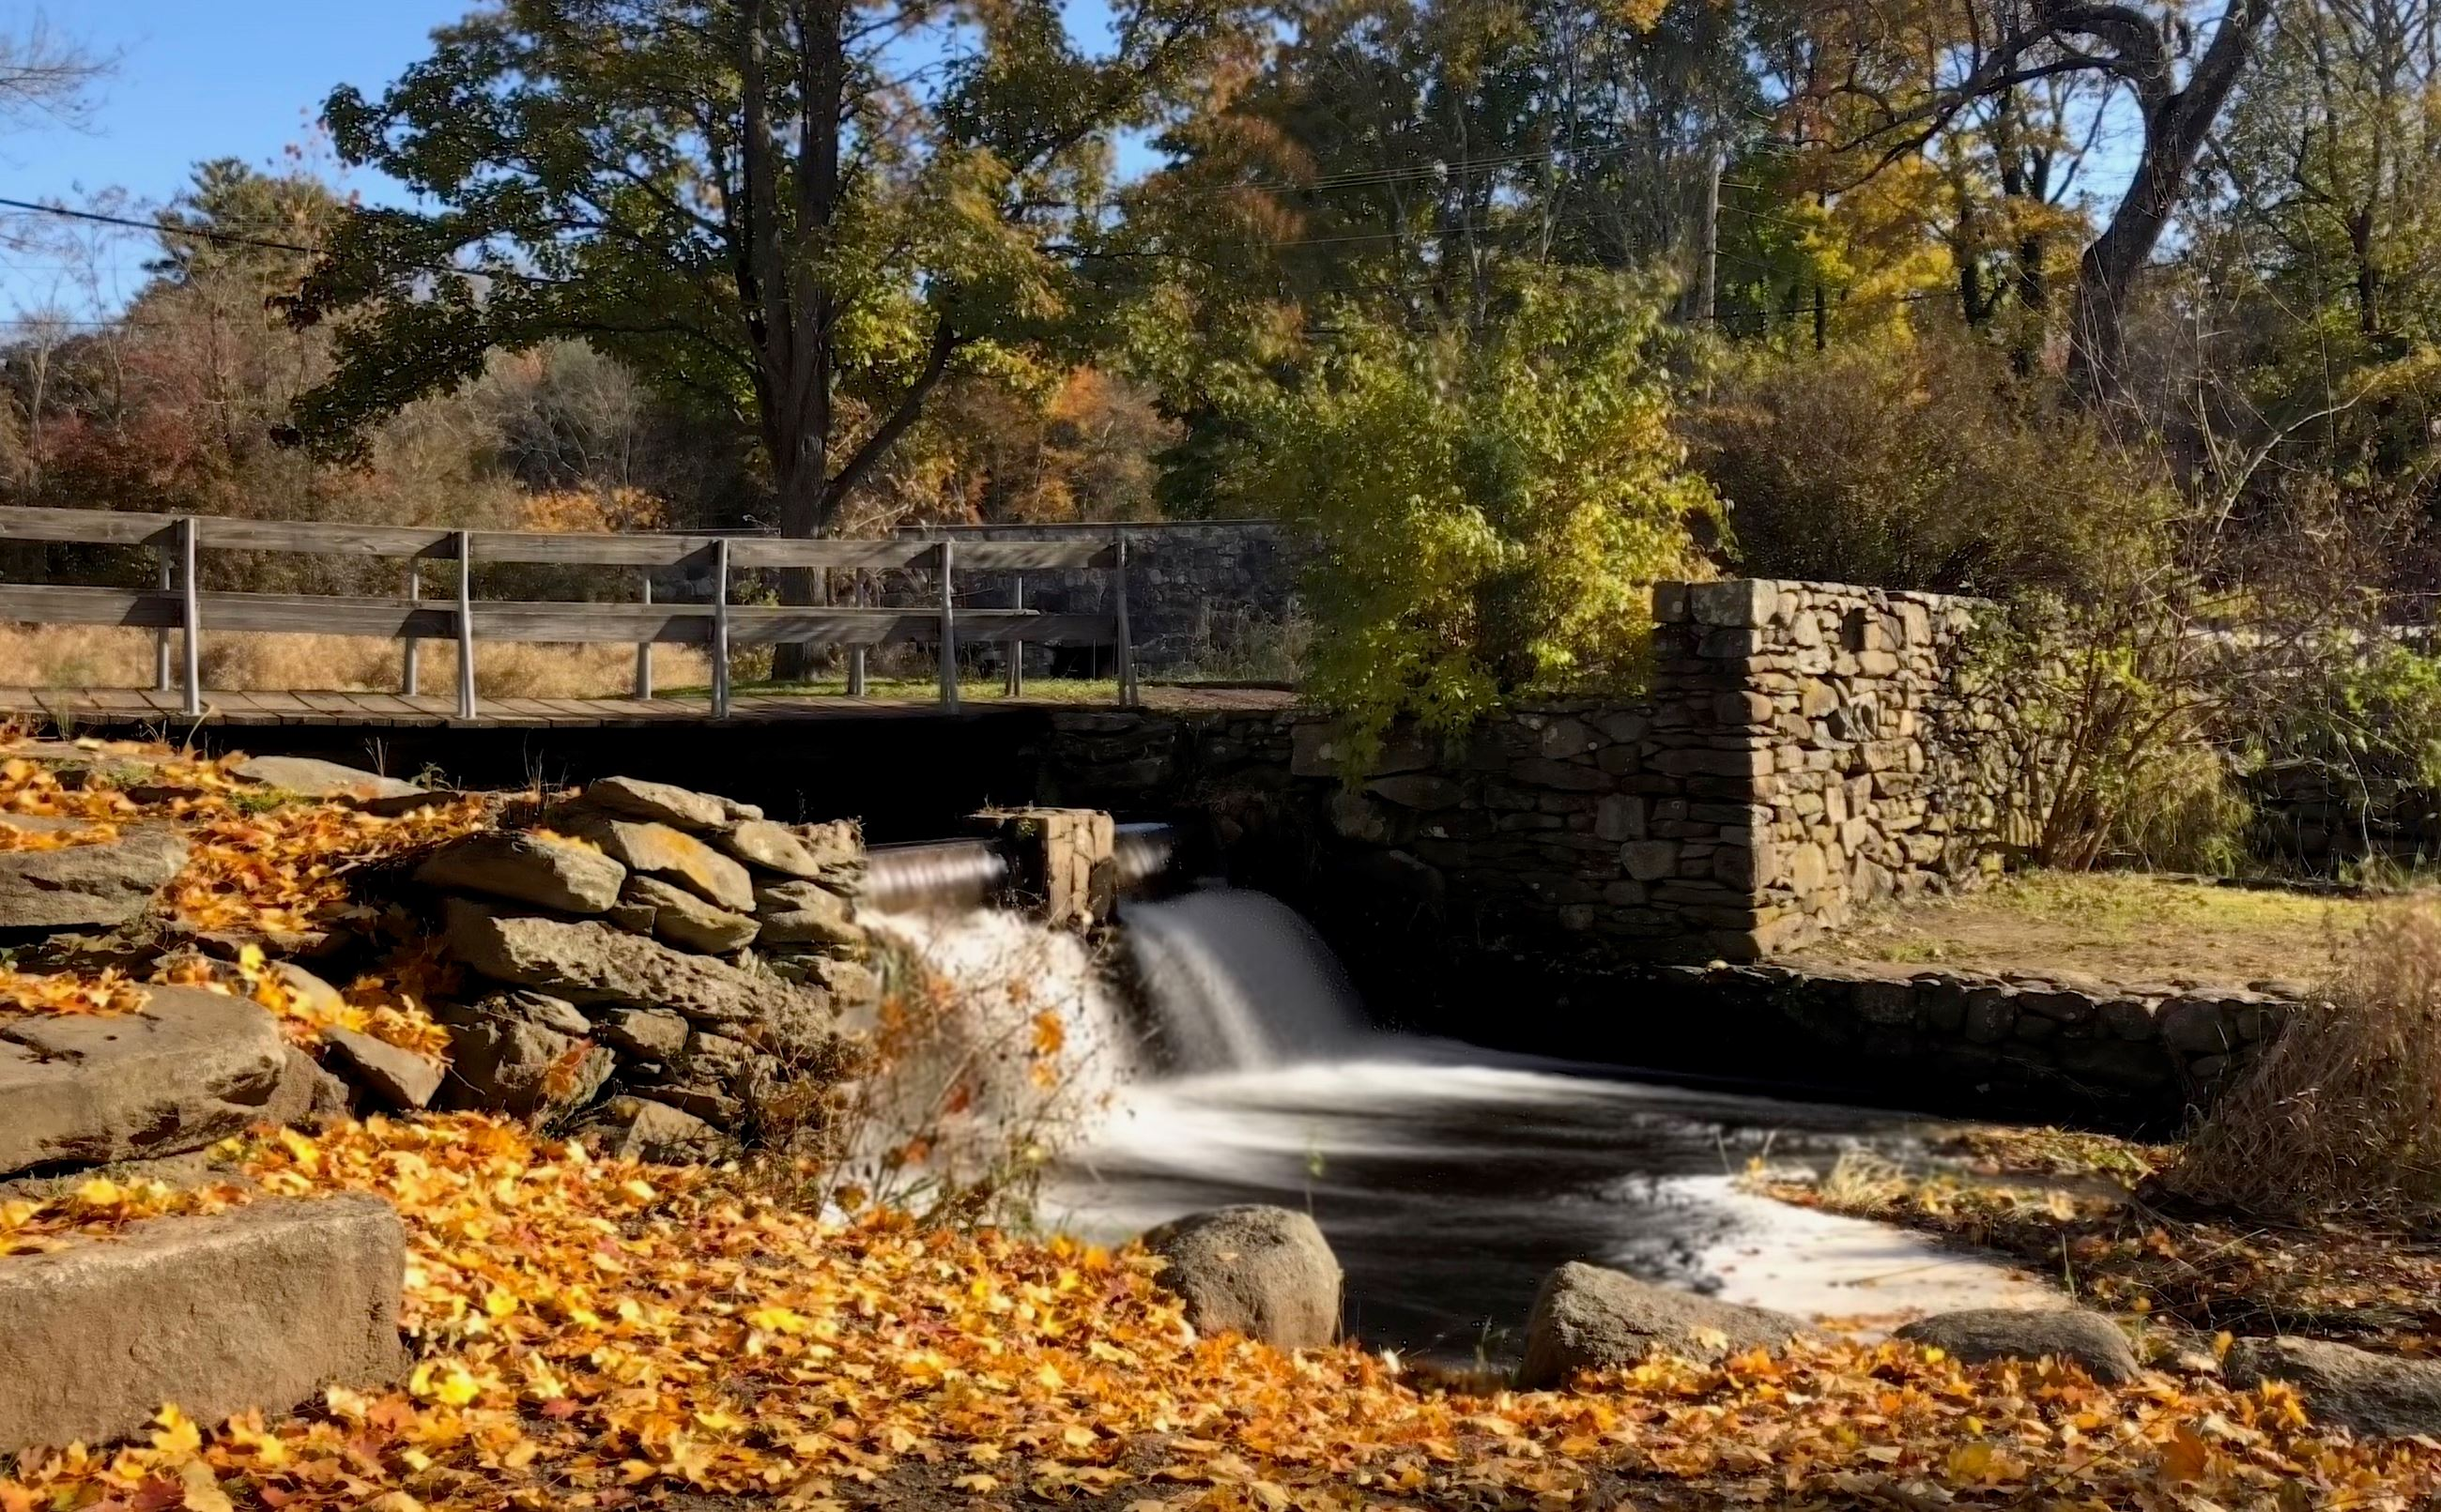 Bridge and small waterfall at Oliver Mill Park in Middleboro